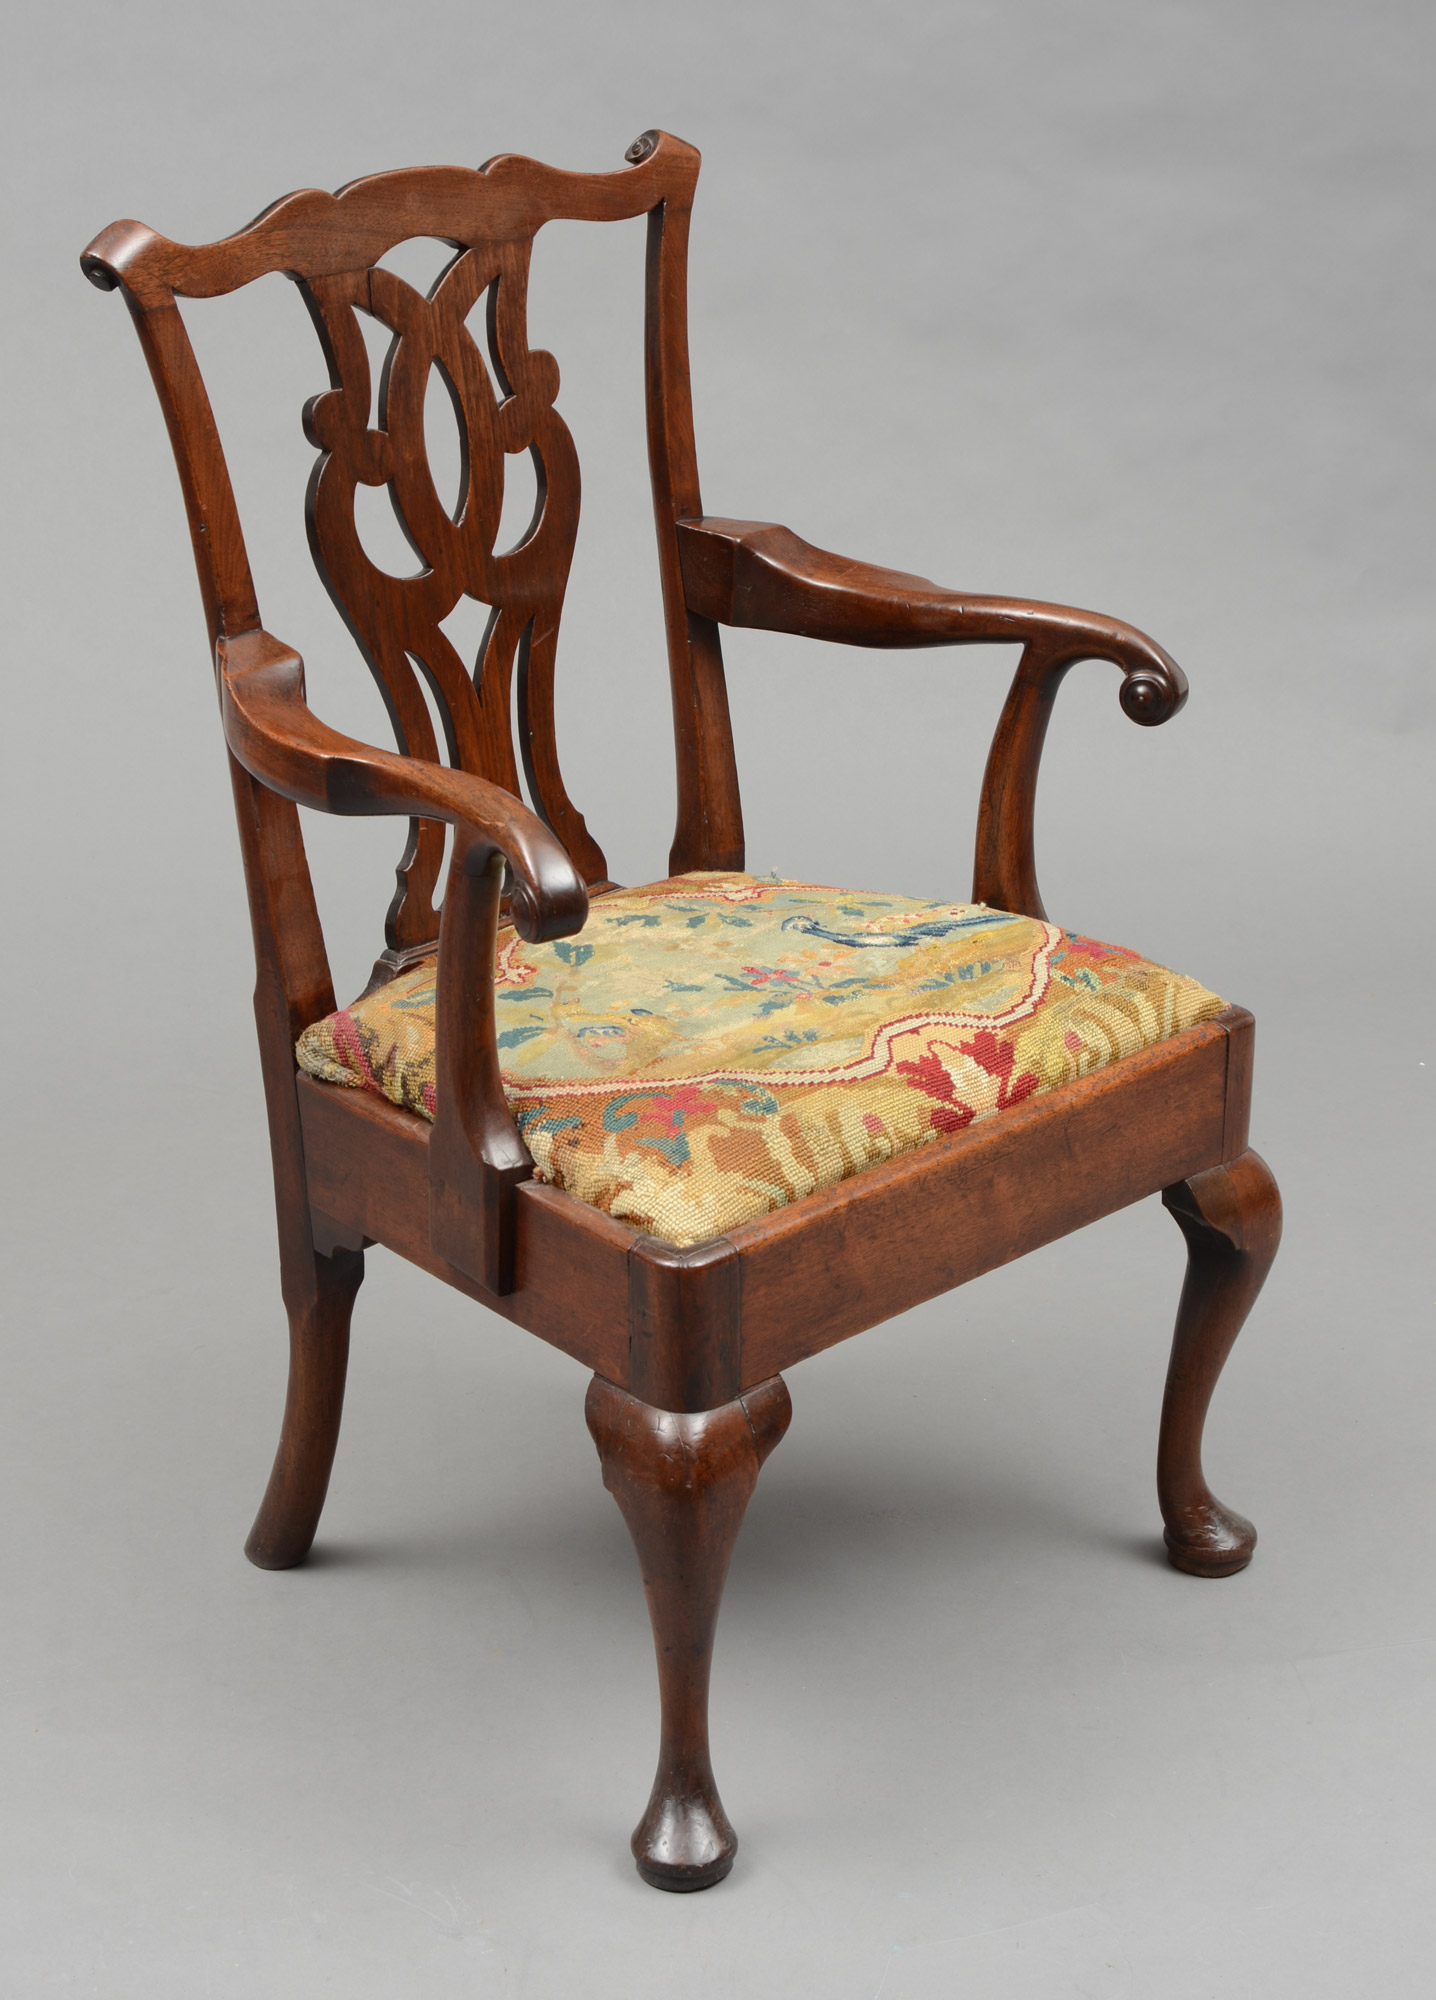 English Antique George III Chippendale Period Armchair, Circa 1760 - Antique Armchair George III Chippendale Period Antique Armchair